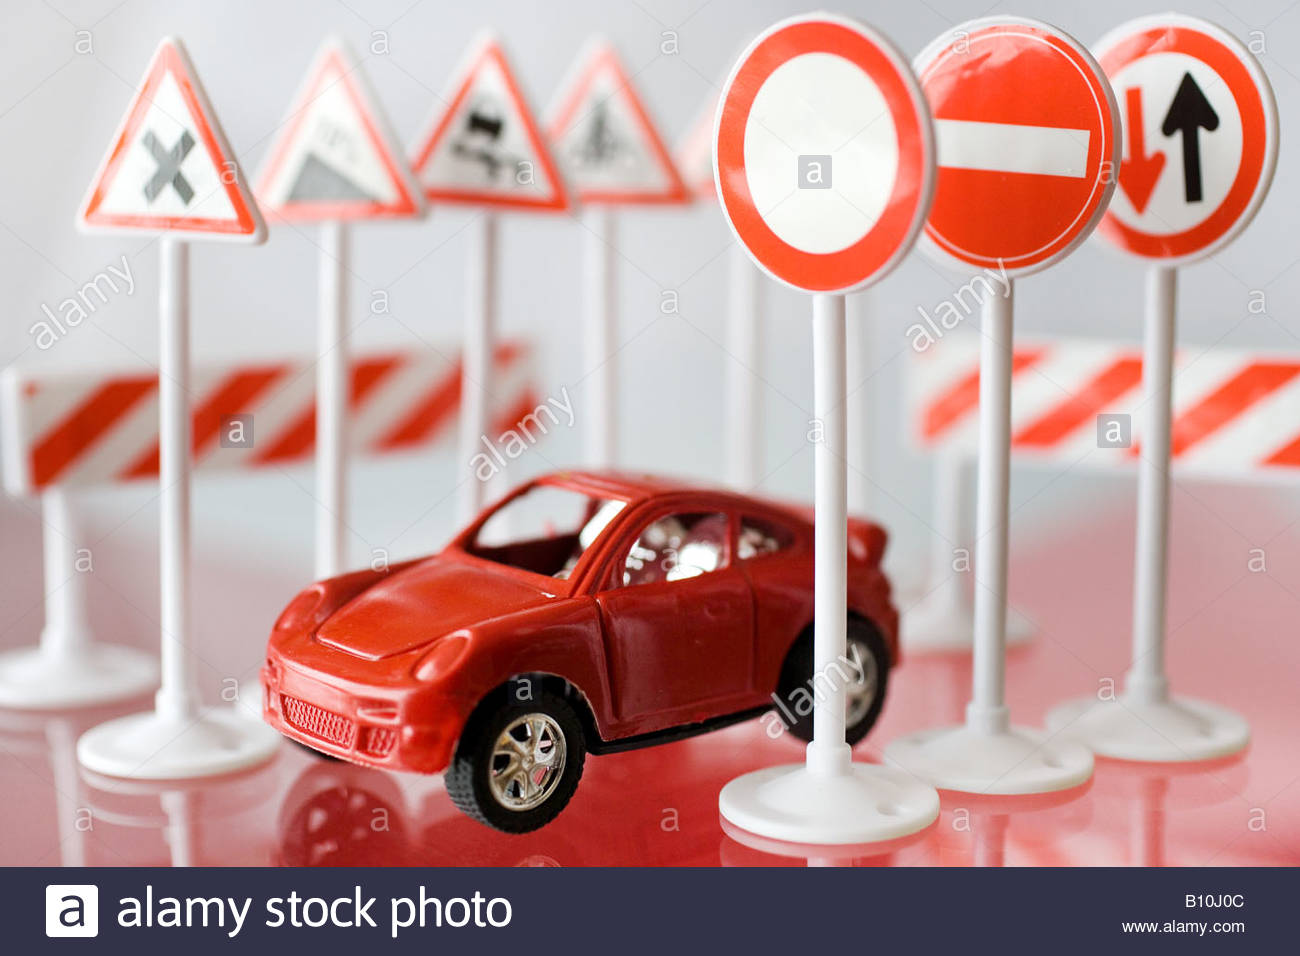 model car with traffic signs - Stock Image